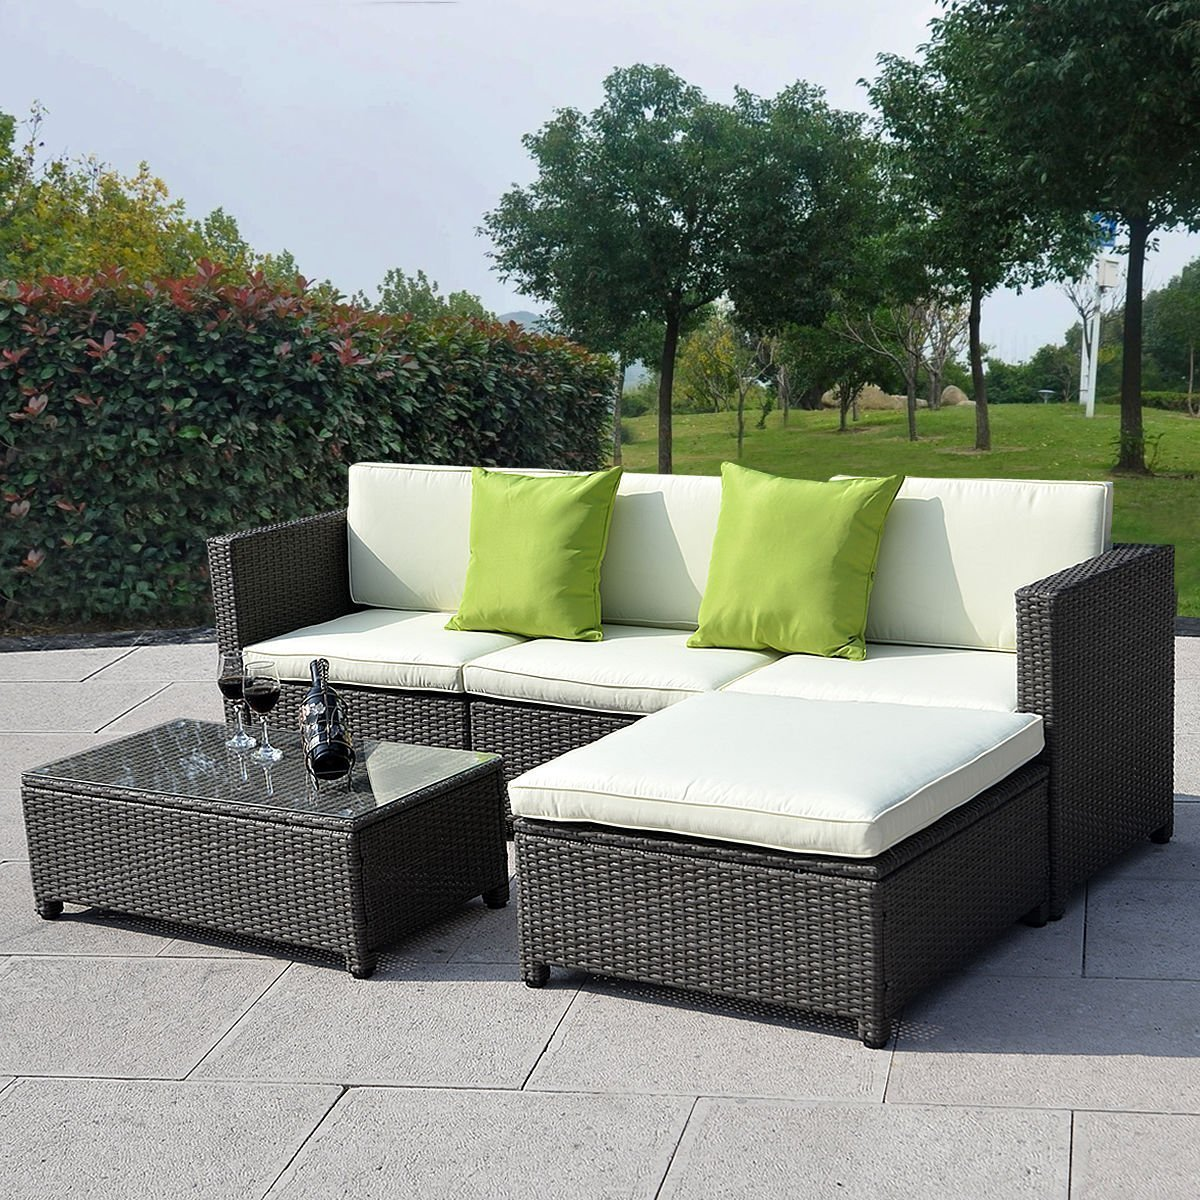 garden conservatory arm sets seater furniture dining outdoor black set rattan with chair in patio new miami dark cushions